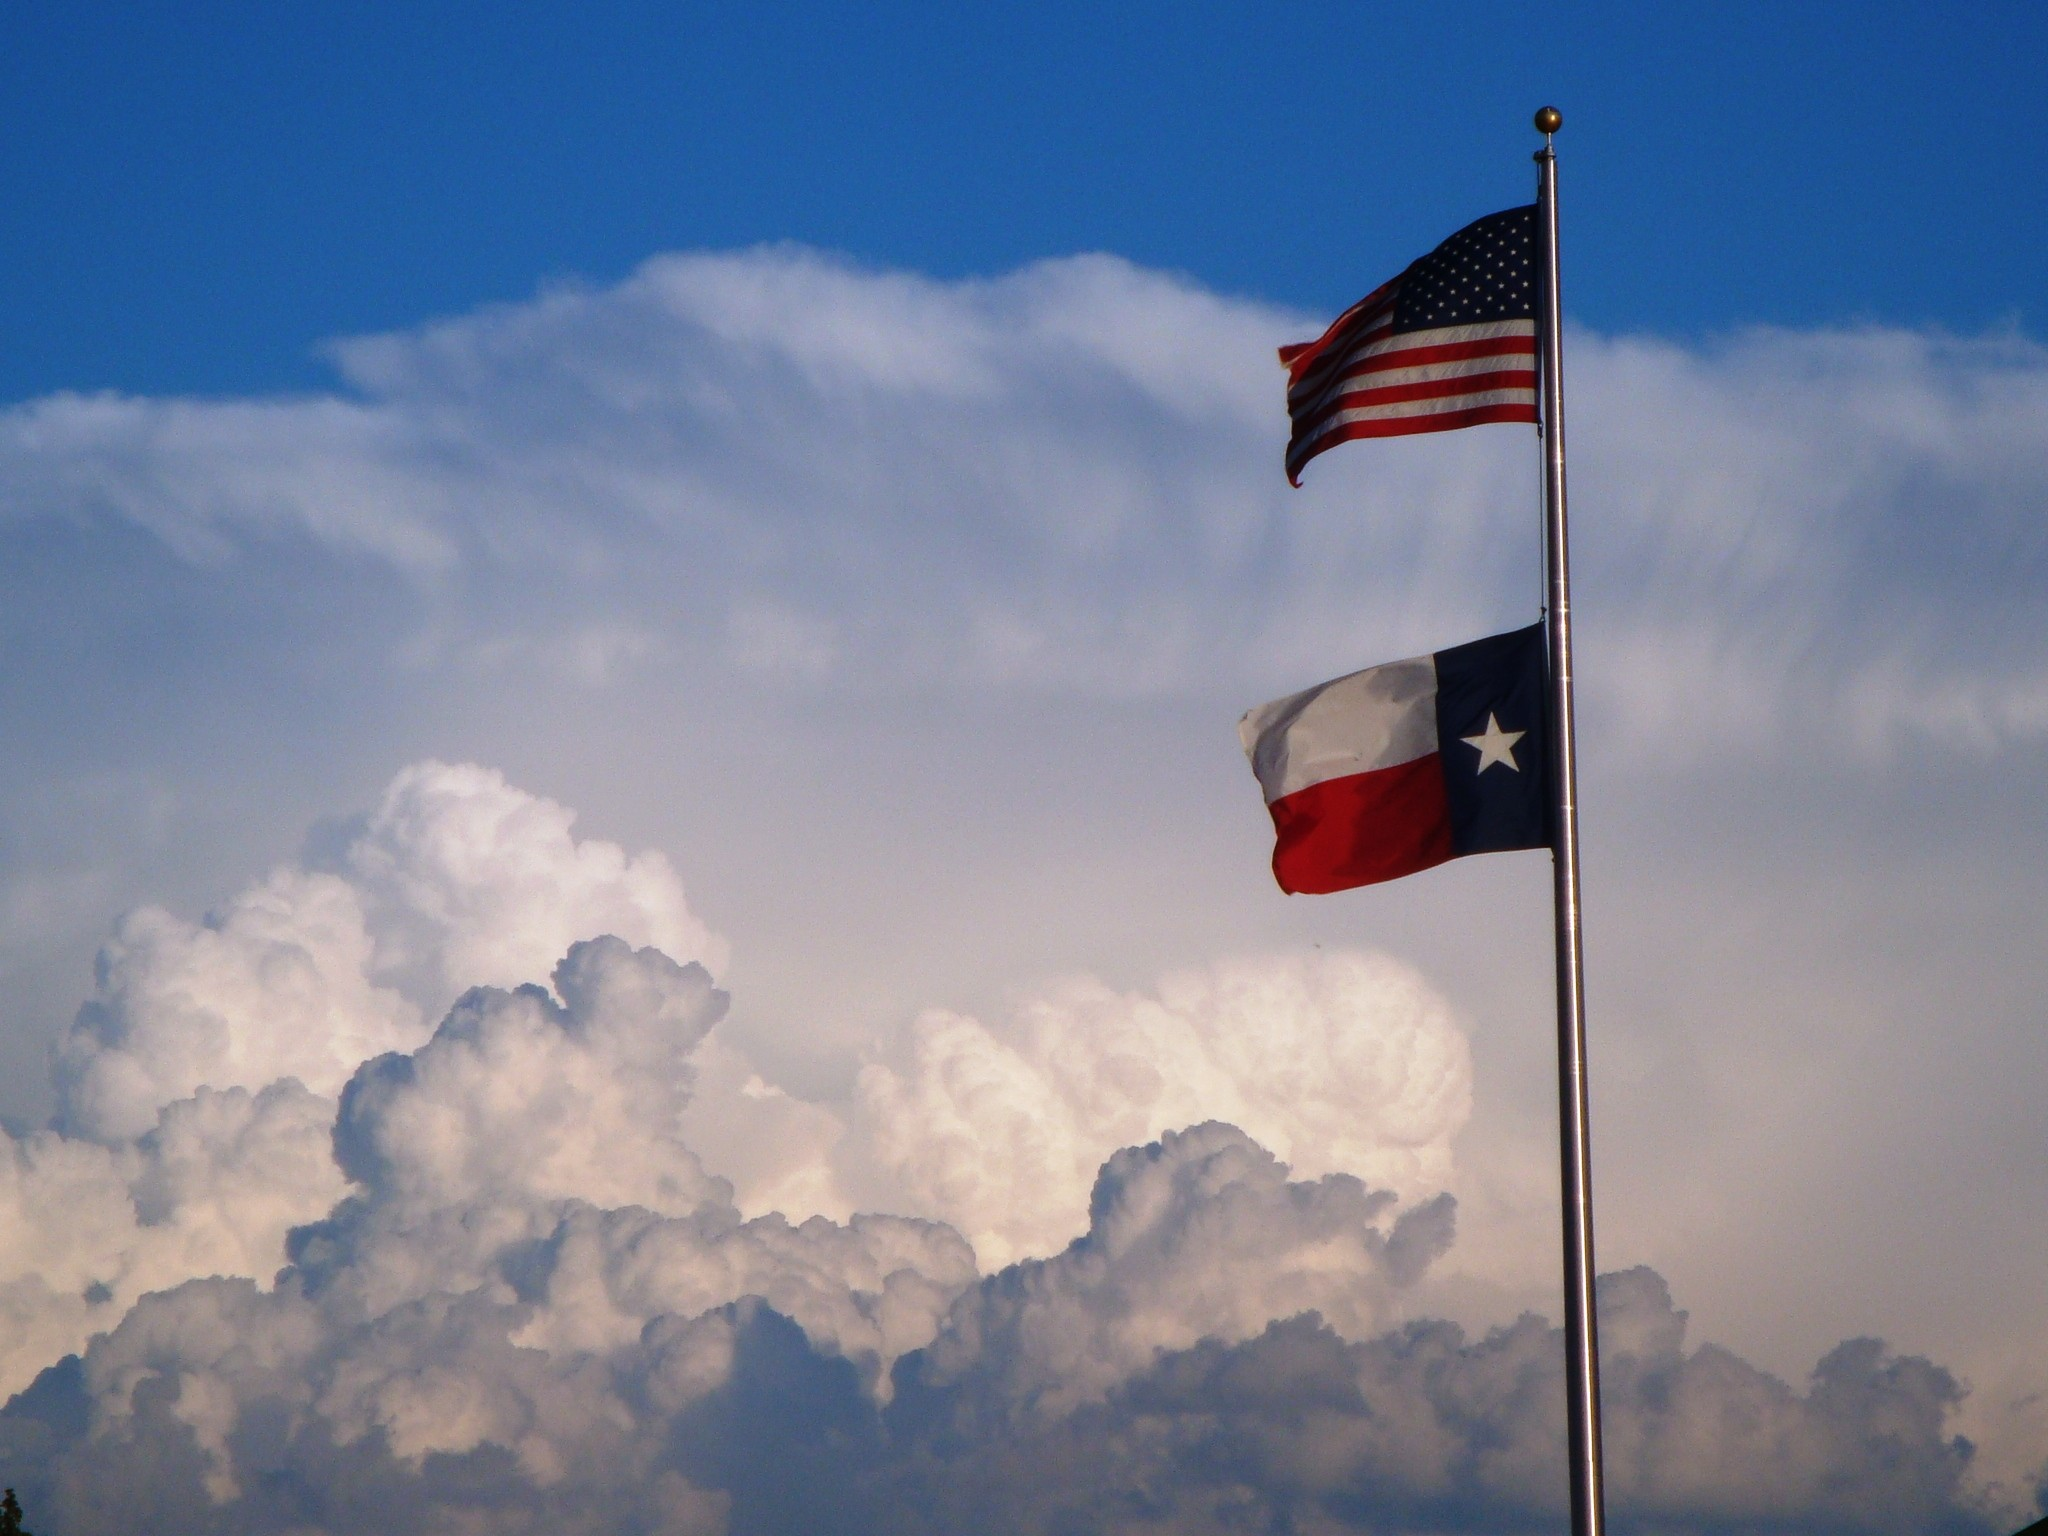 2048x1536 State Of Texas Flag Wallpaper United states and texas flag